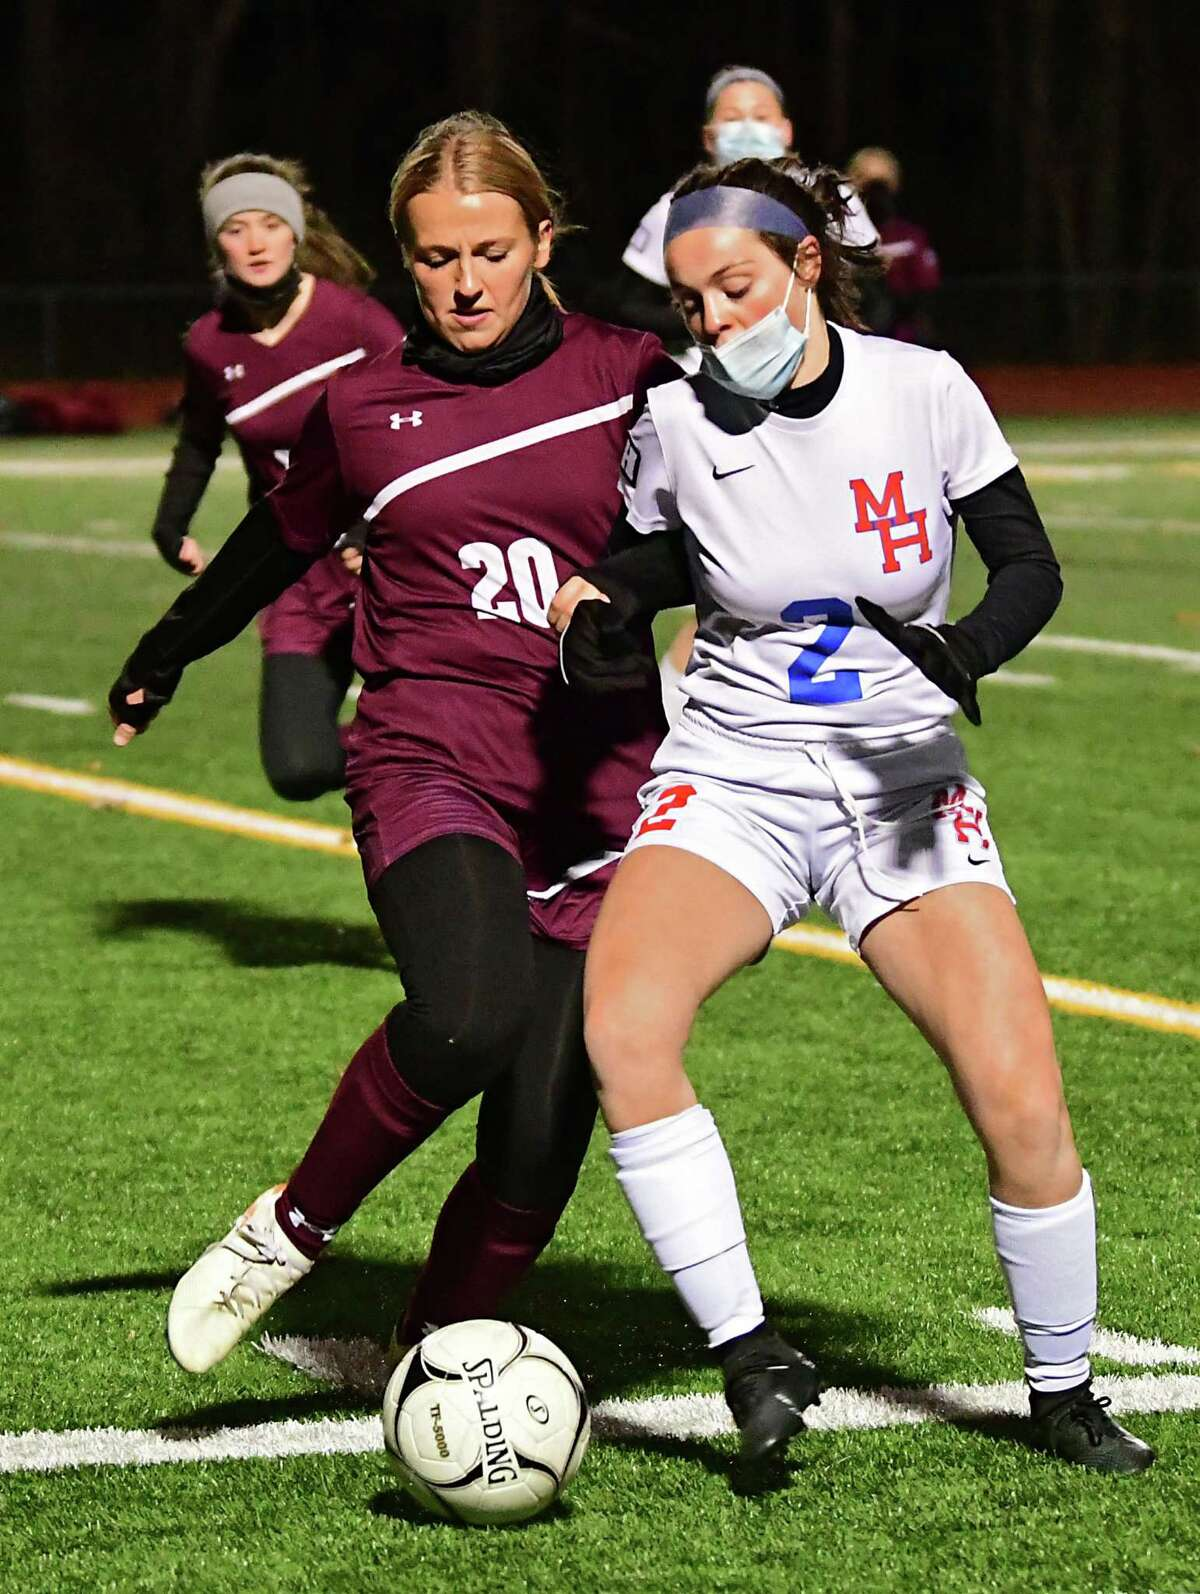 Greenville's Kaylee Burke, left, battles with Maple Hill's Isabella Thomas during the Patroon Conference girls' soccer title game on Monday, Nov. 2, 2020 in Craryville, N.Y. (Lori Van Buren/Times Union)